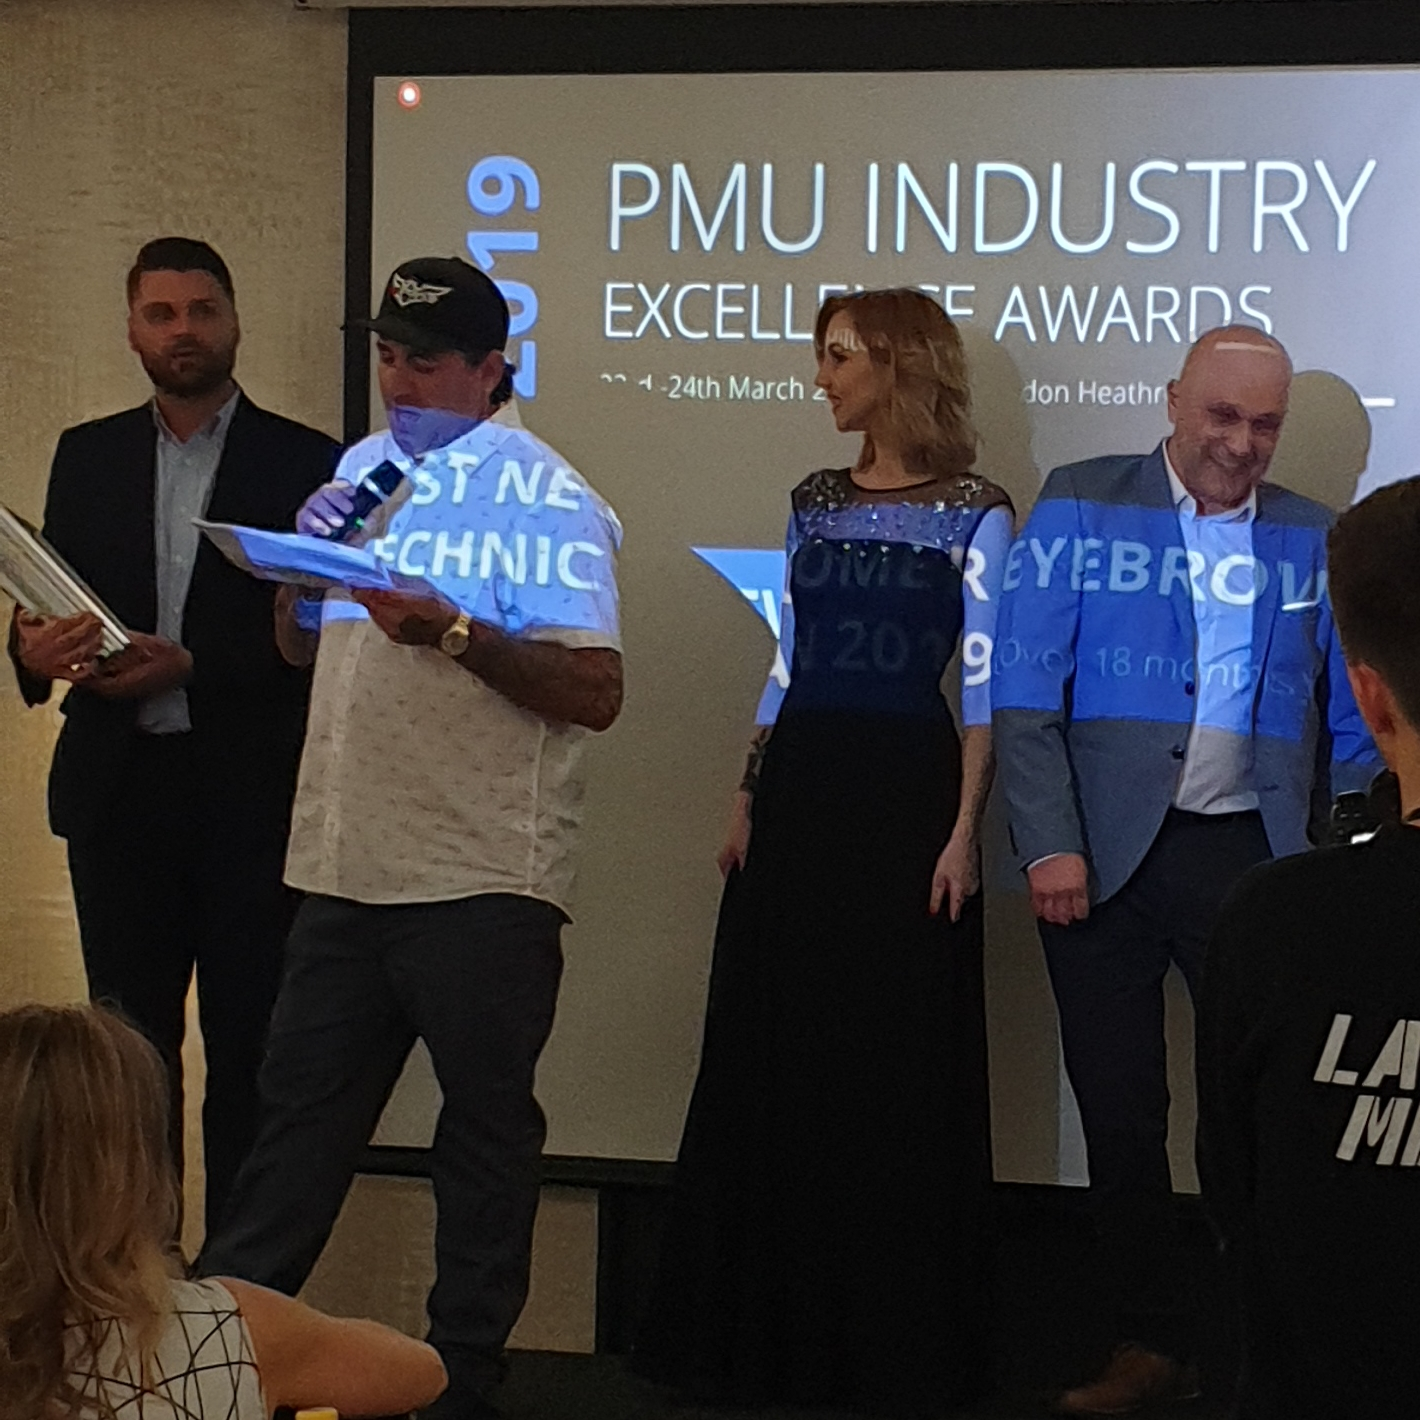 2019 PMU masters conference & awards